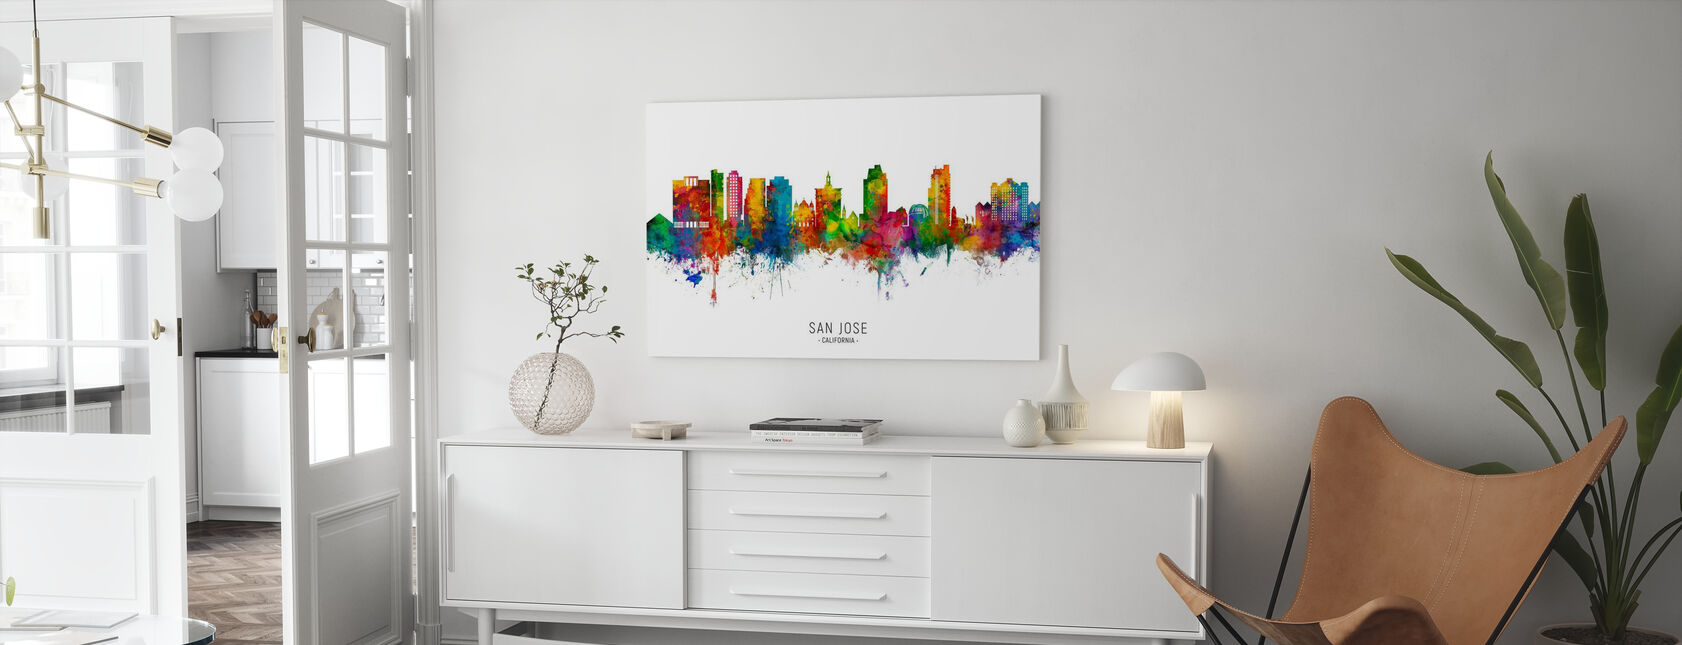 San Jose California Skyline - Canvas print - Living Room